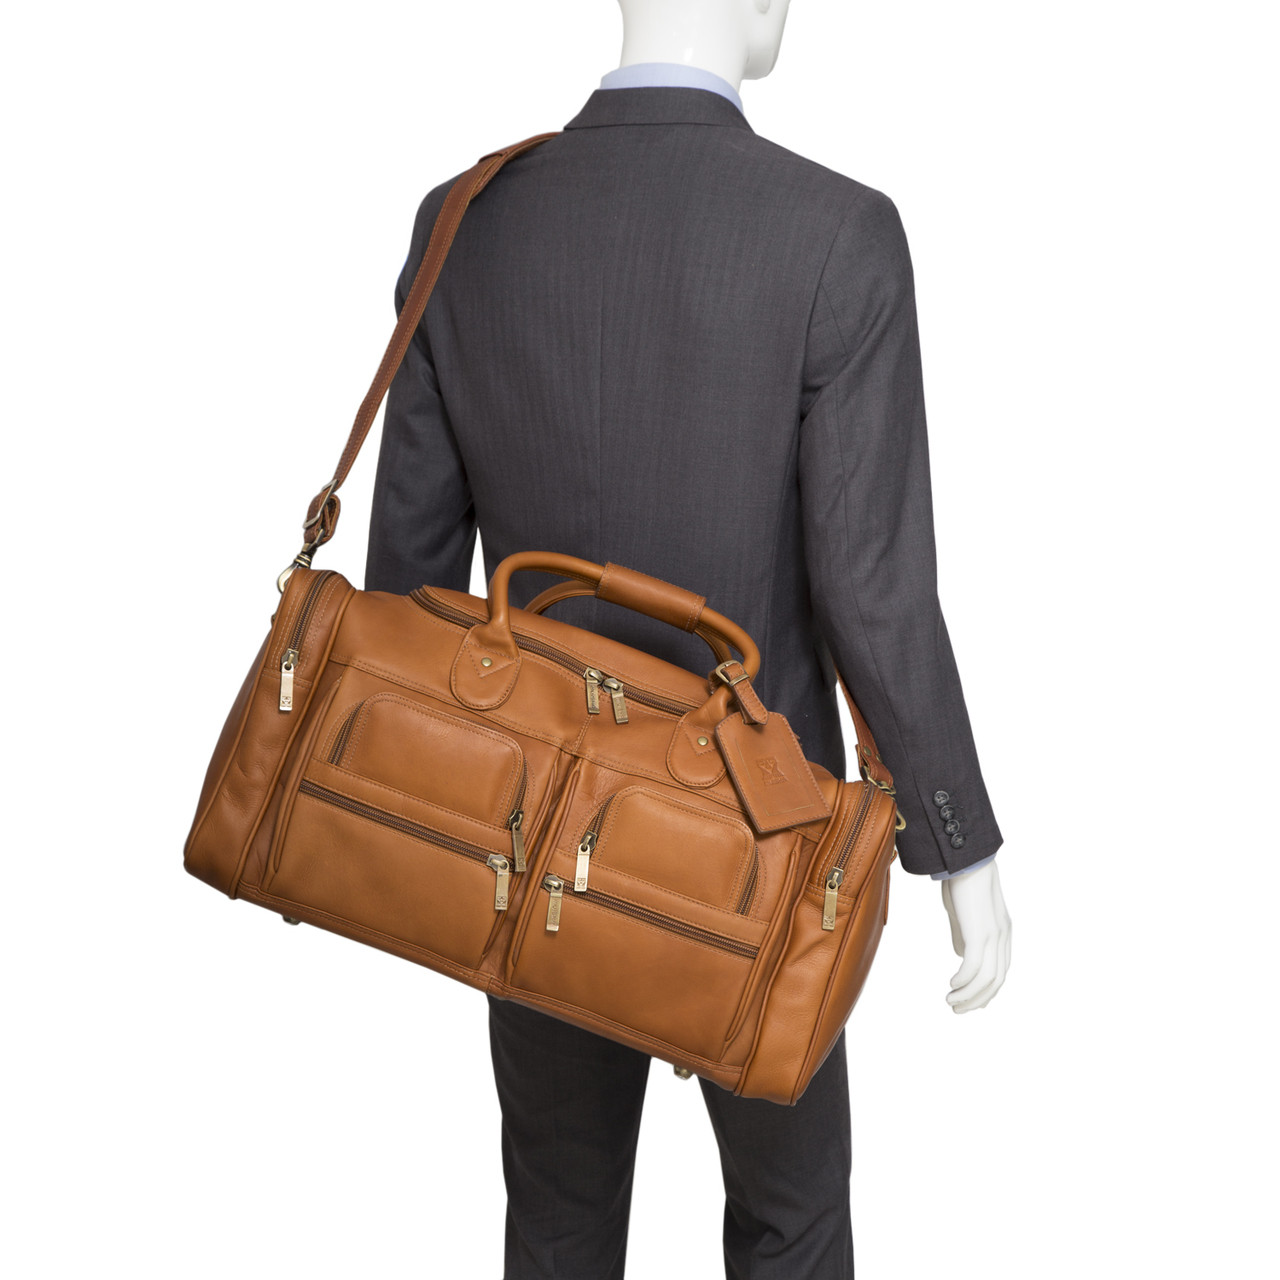 Muiska - New York - Leather Duffel Bag is handcrafted from the finest Colombian leather